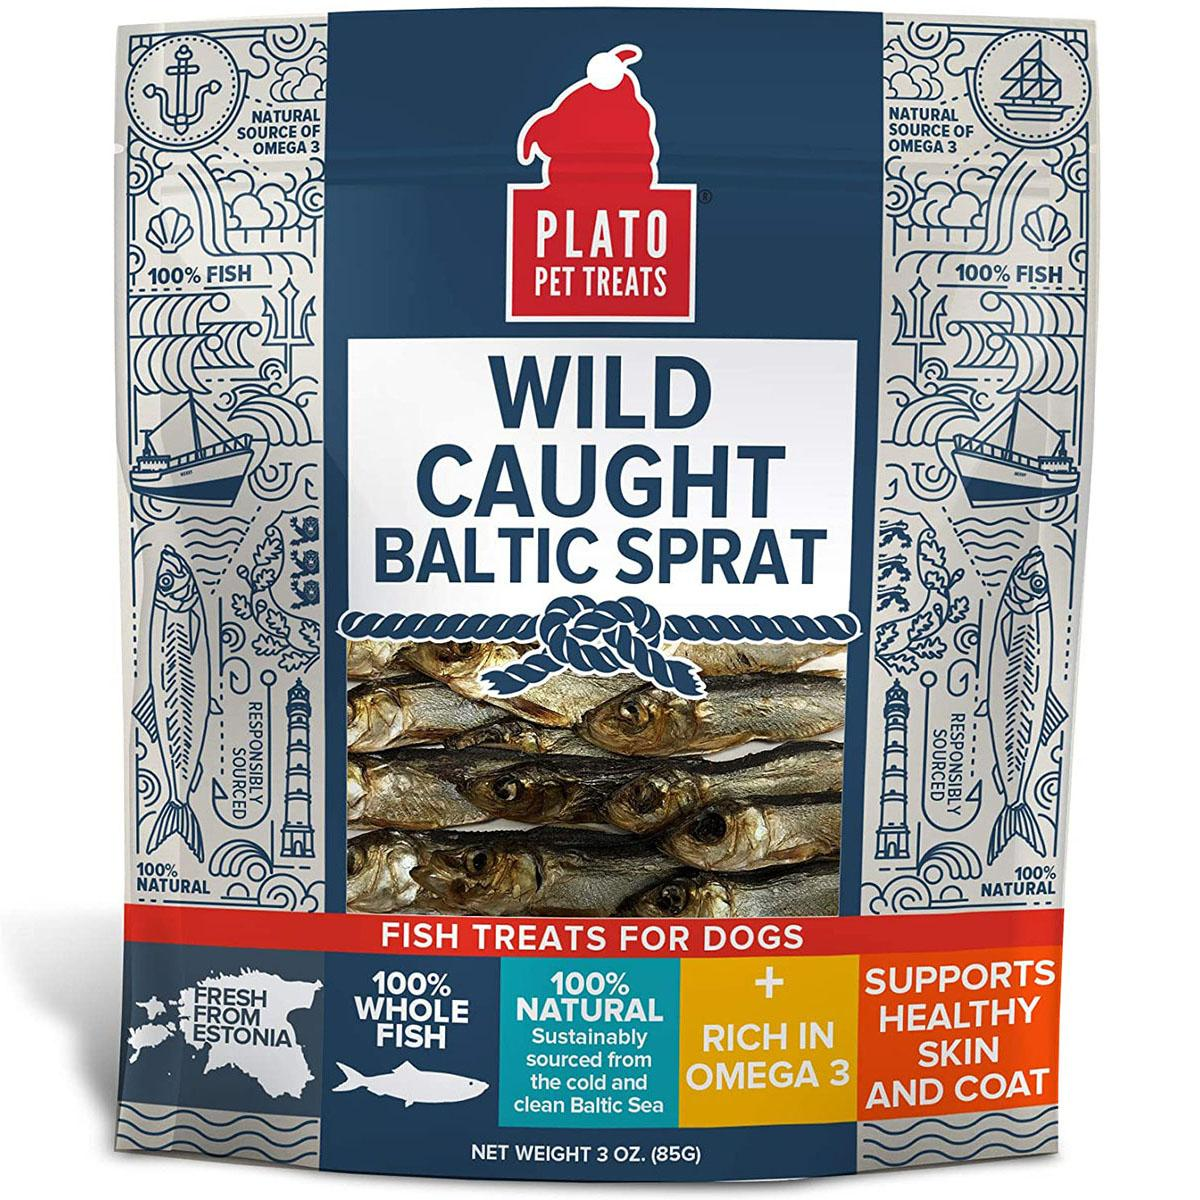 Plato Wild Caught Baltic Sprat Dog Treats